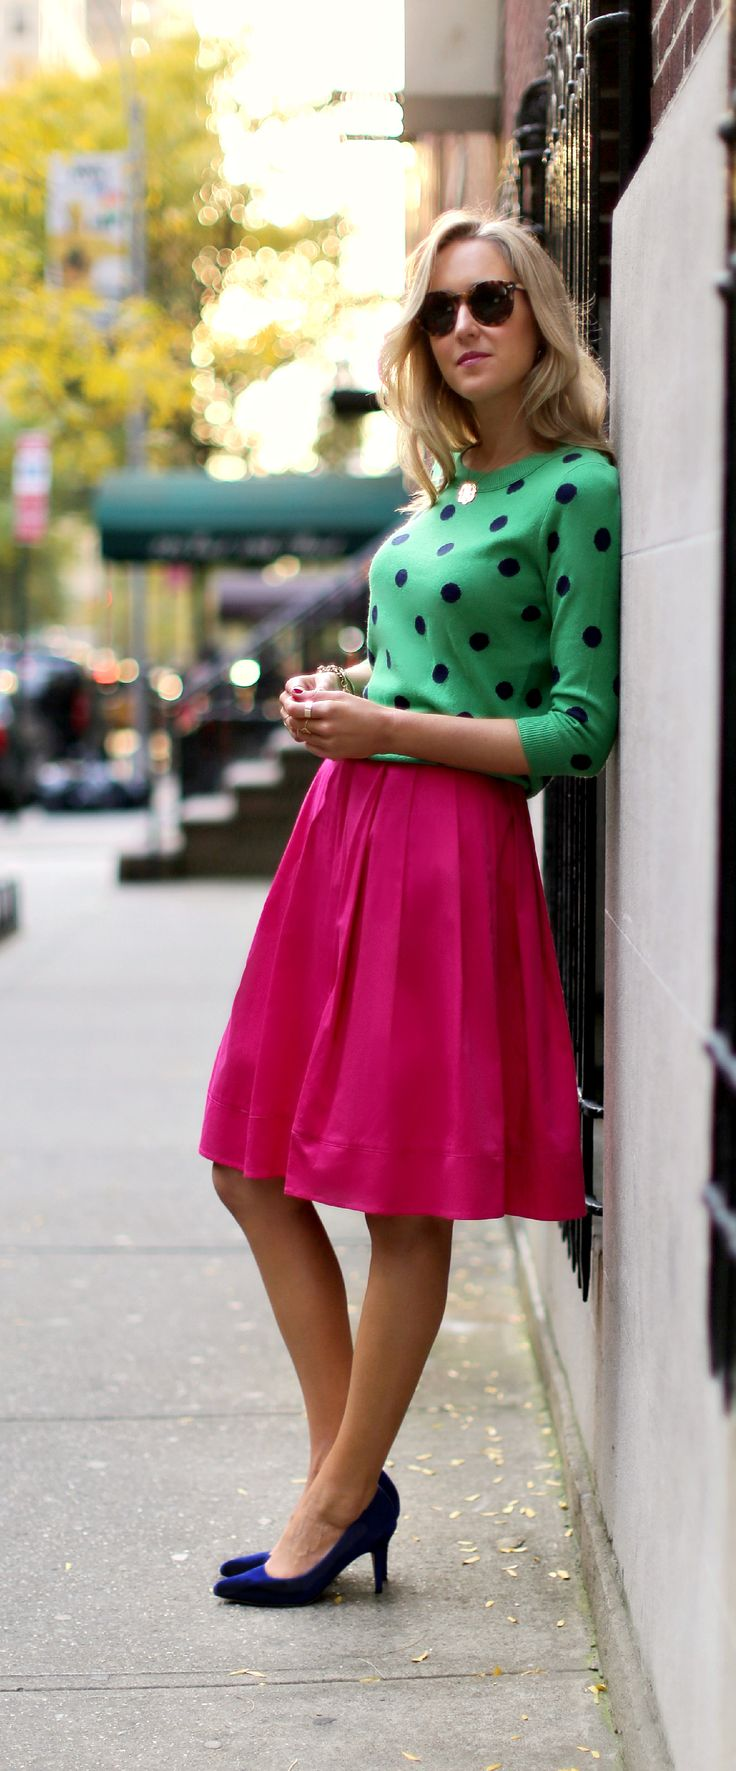 39 Best Images About Fashion Style For Young Professionals On Pinterest Interview Young